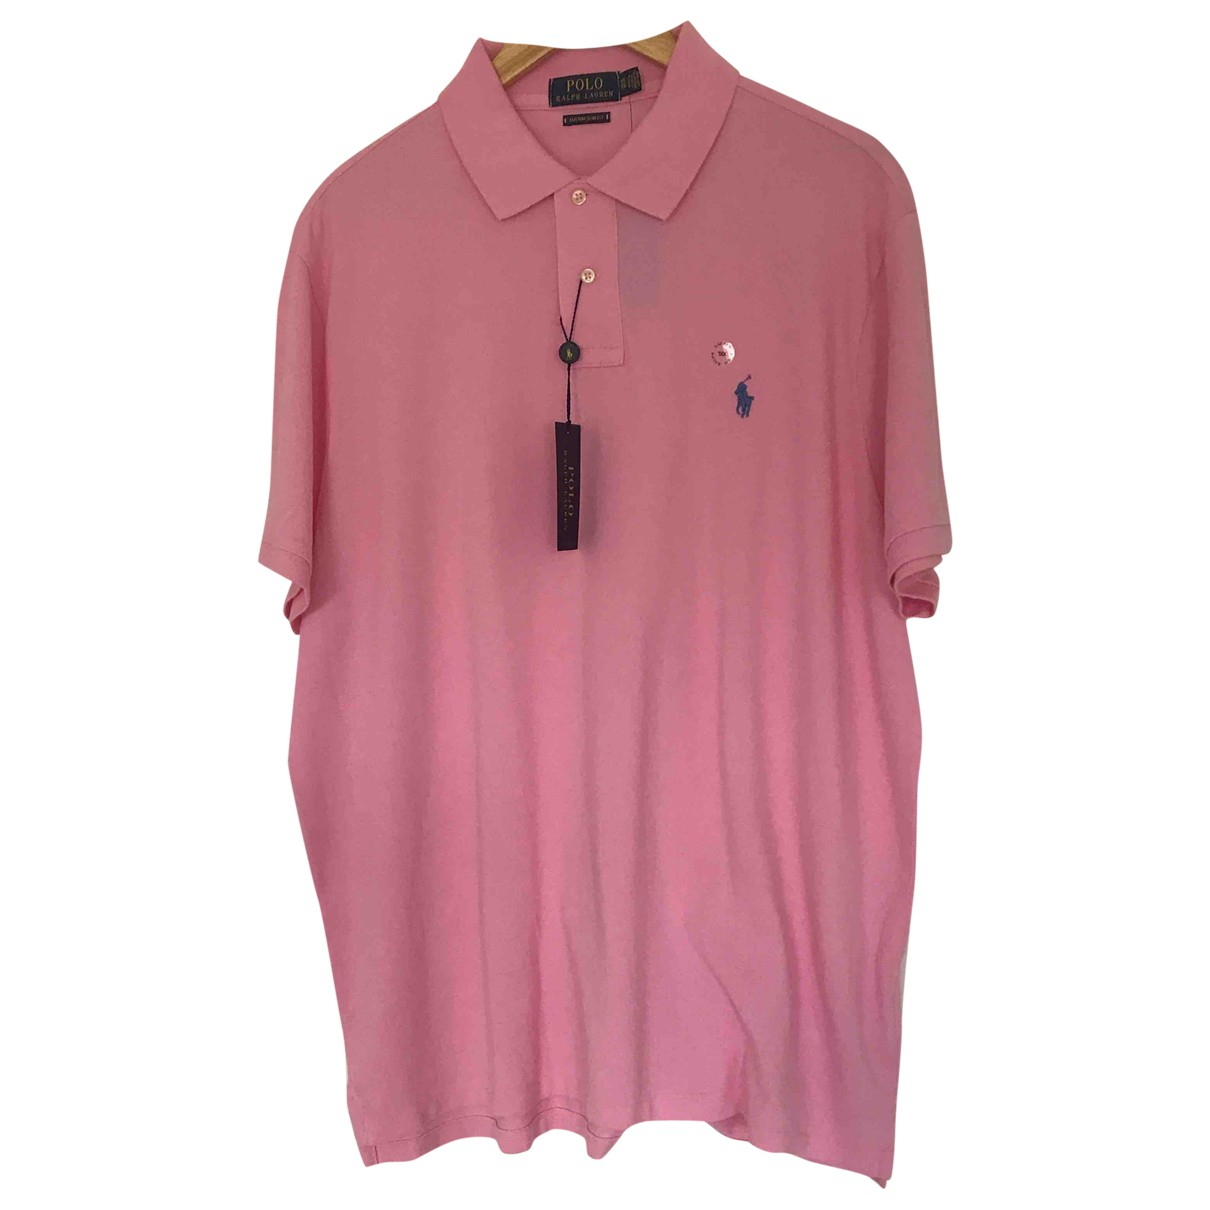 Polo Ralph Lauren Polo cintre manches courtes Poloshirts in  Rosa Baumwolle